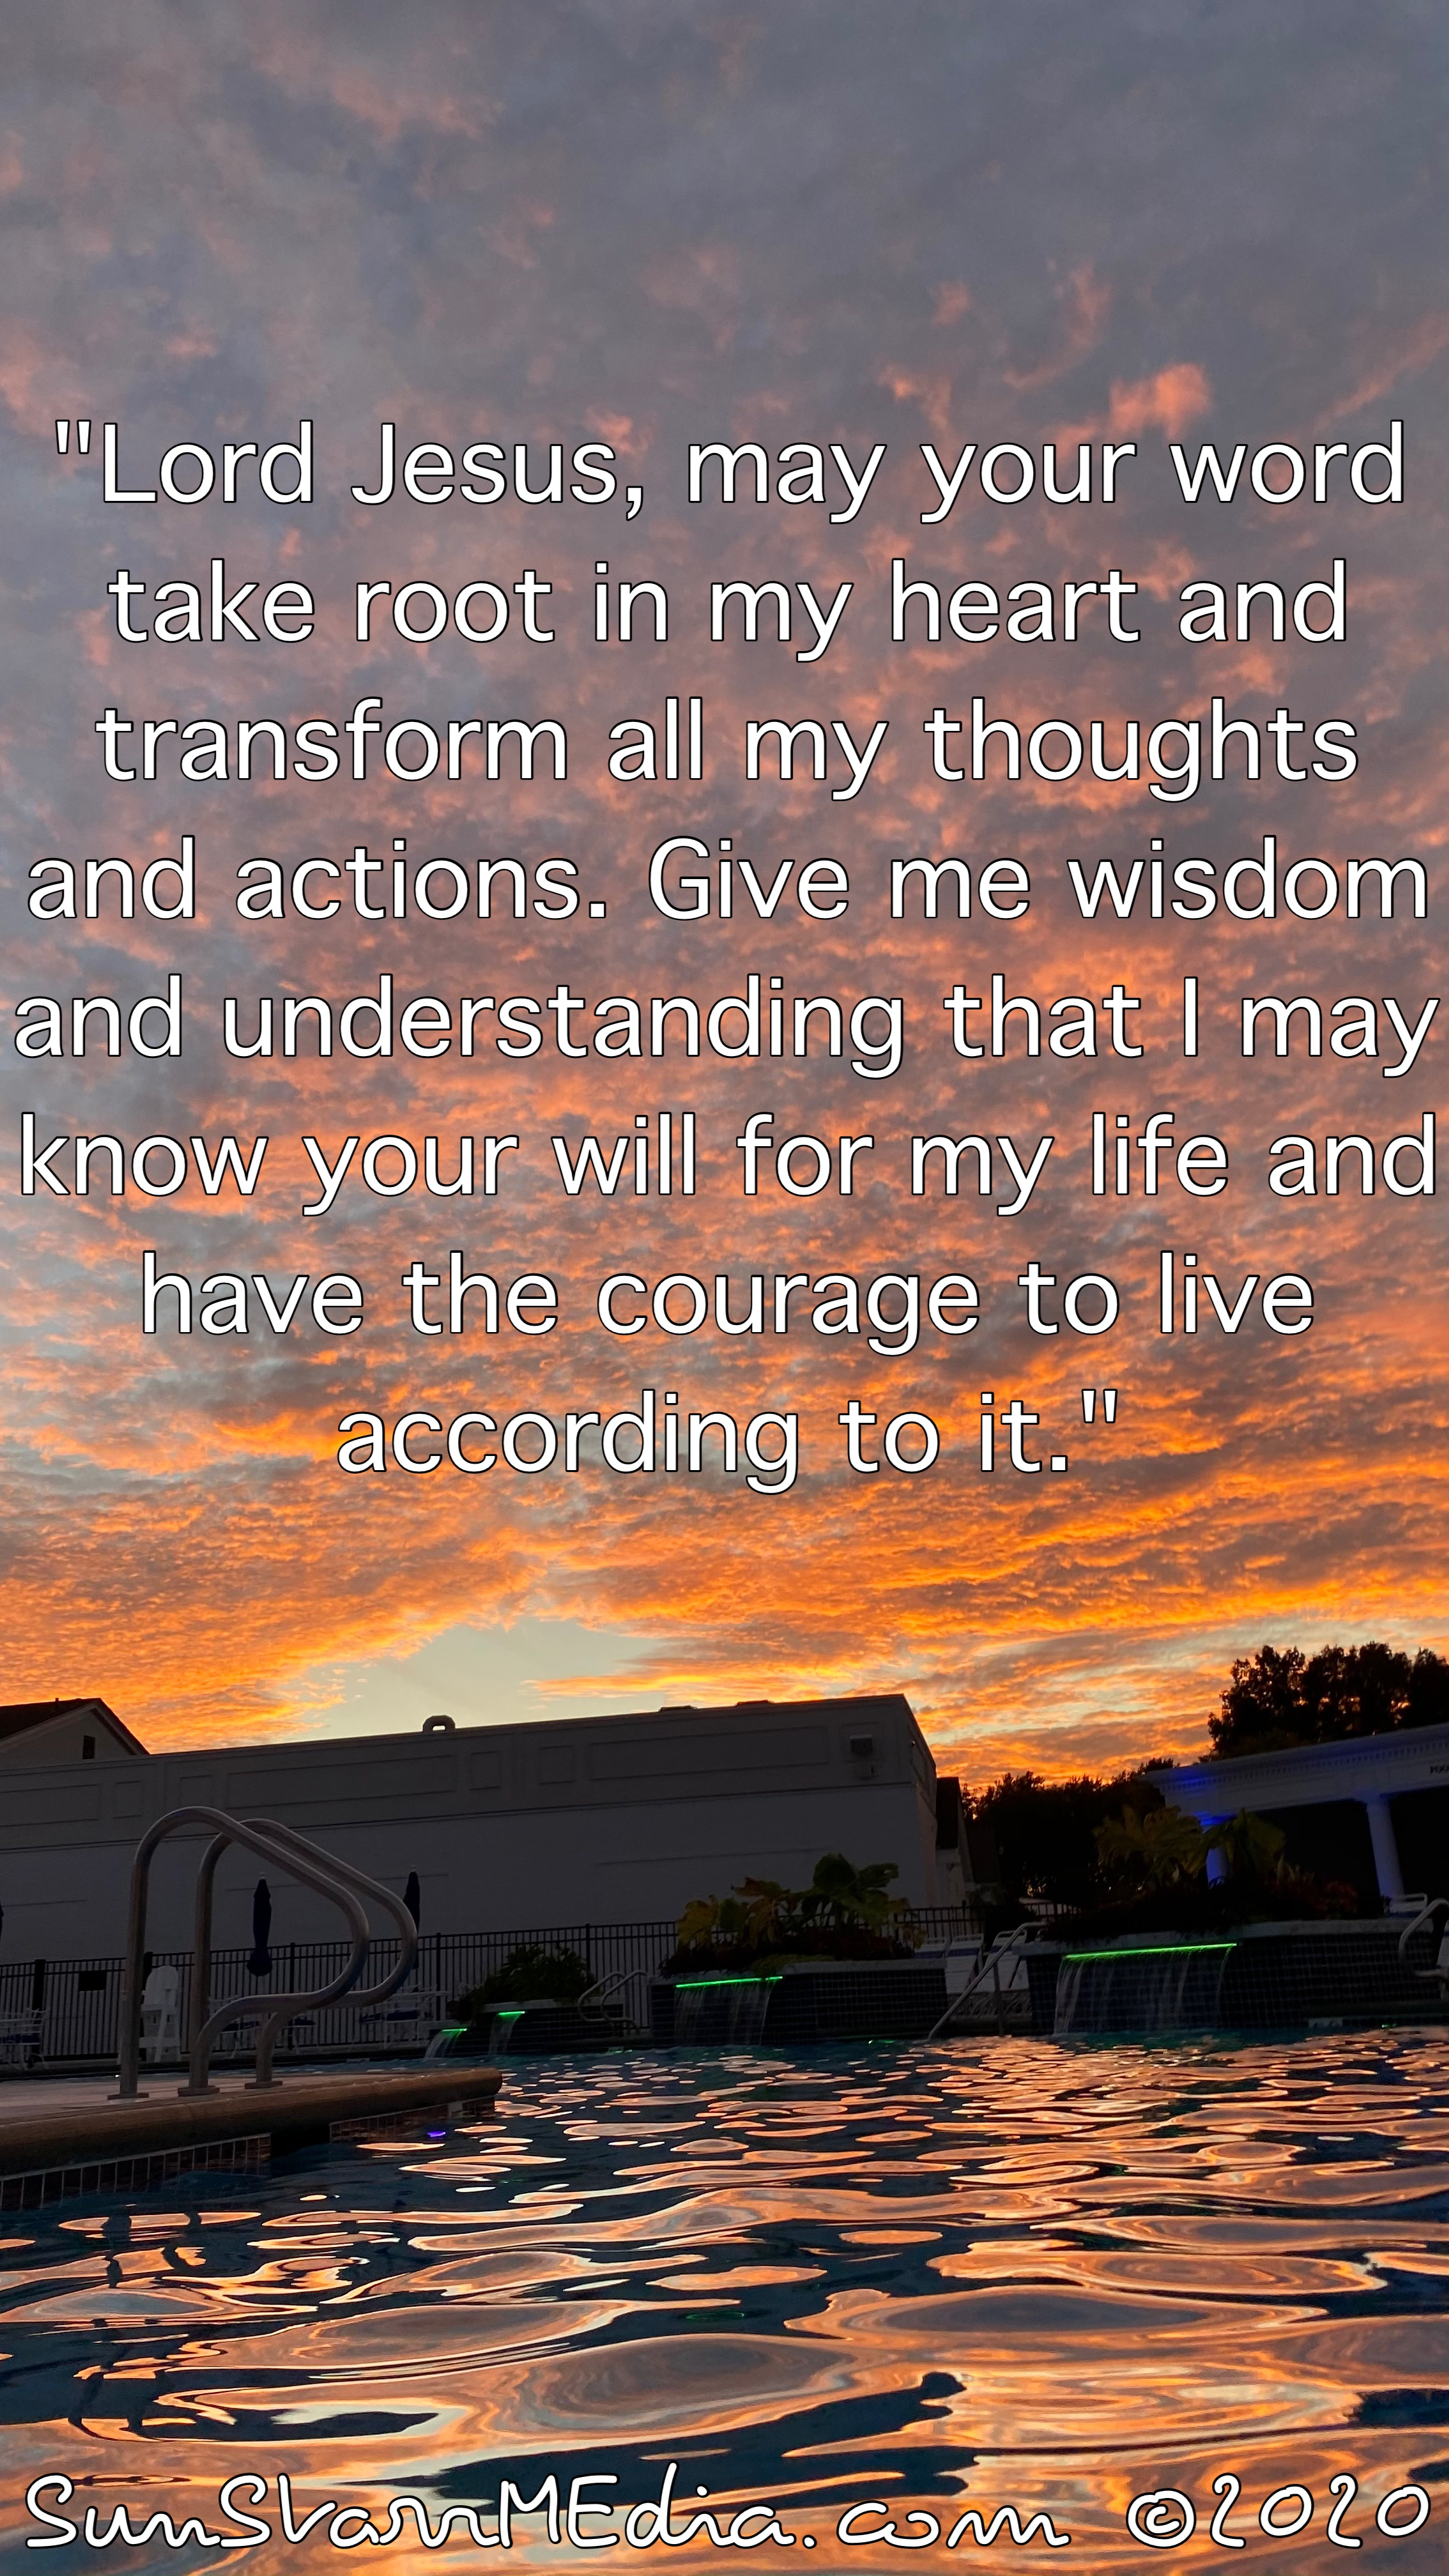 """""""Lord Jesus, may your word take root in my heart and transform all my thoughts and actions. Give me wisdom and understanding that I may know your will for my life and have the courage to live according to it."""""""